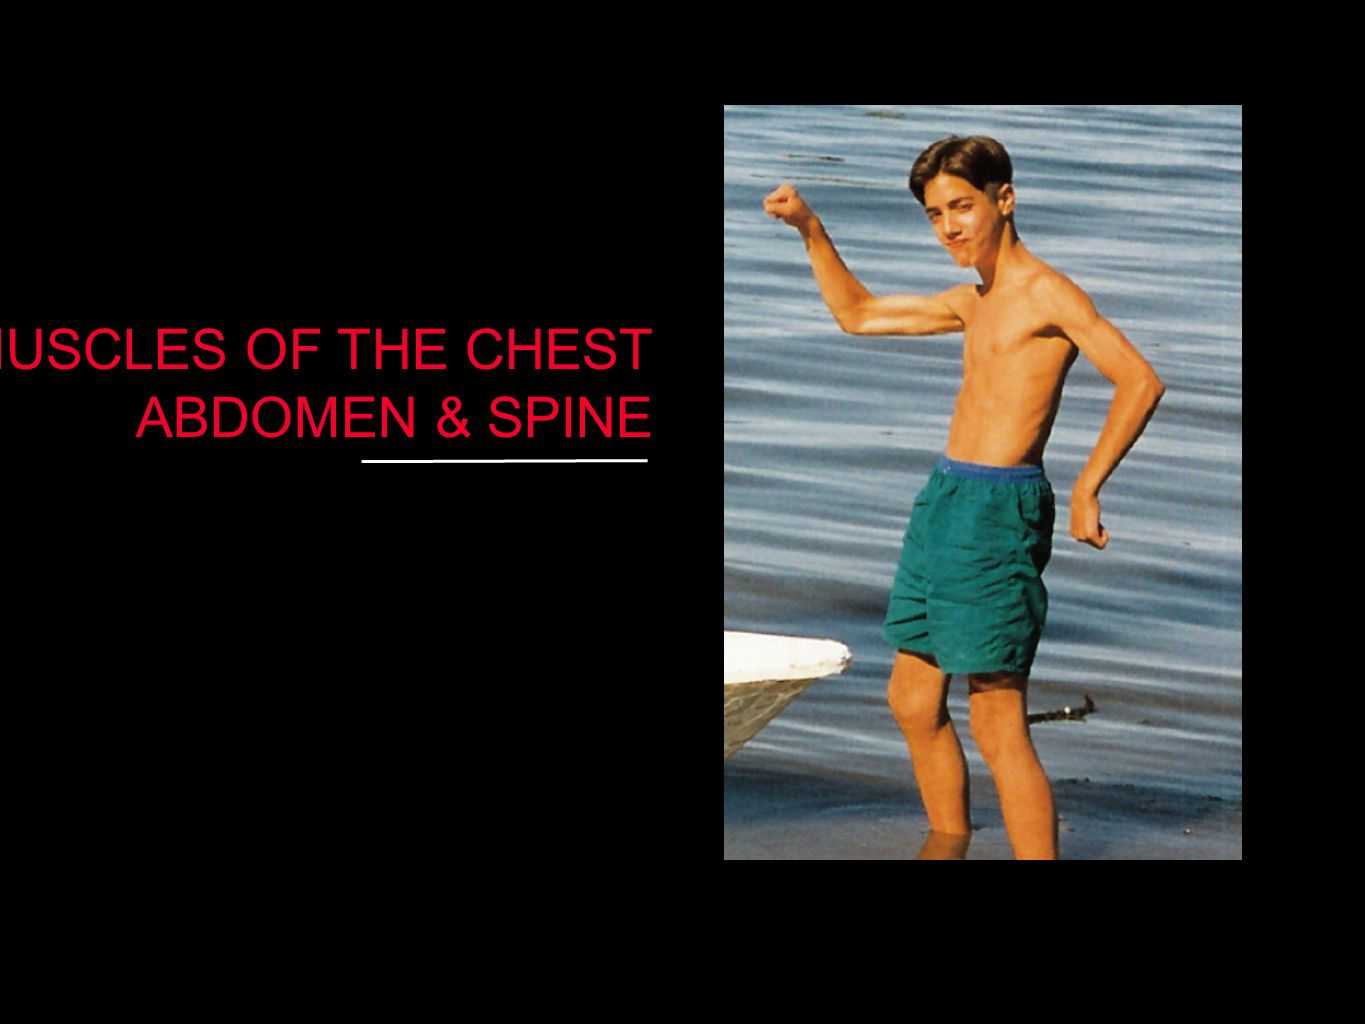 MUSCLES OF THE CHEST ABDOMEN & SPINE